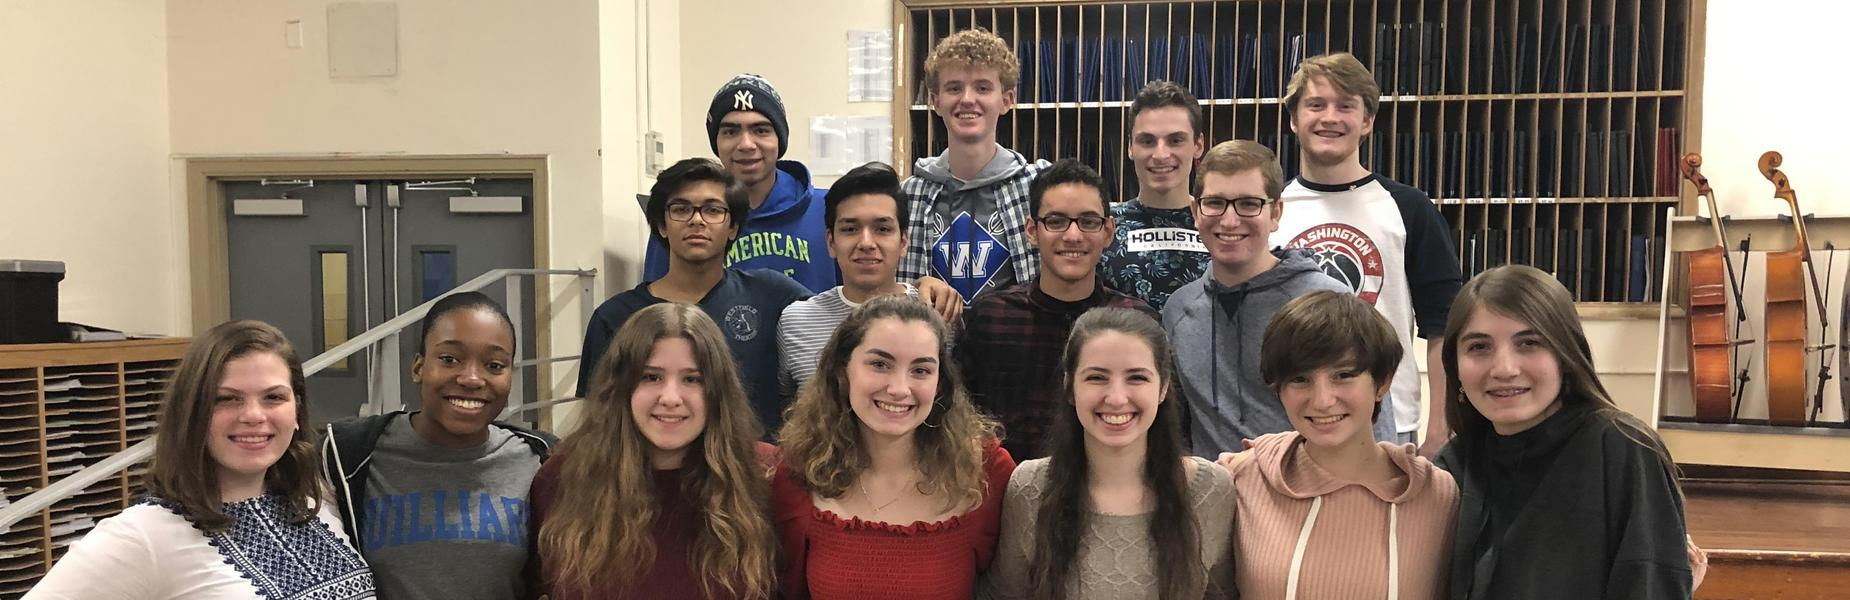 15 Westfield High School student vocalists will perform with the Central Jersey regional chorus in January.  The 15 vocalists are pictured here.